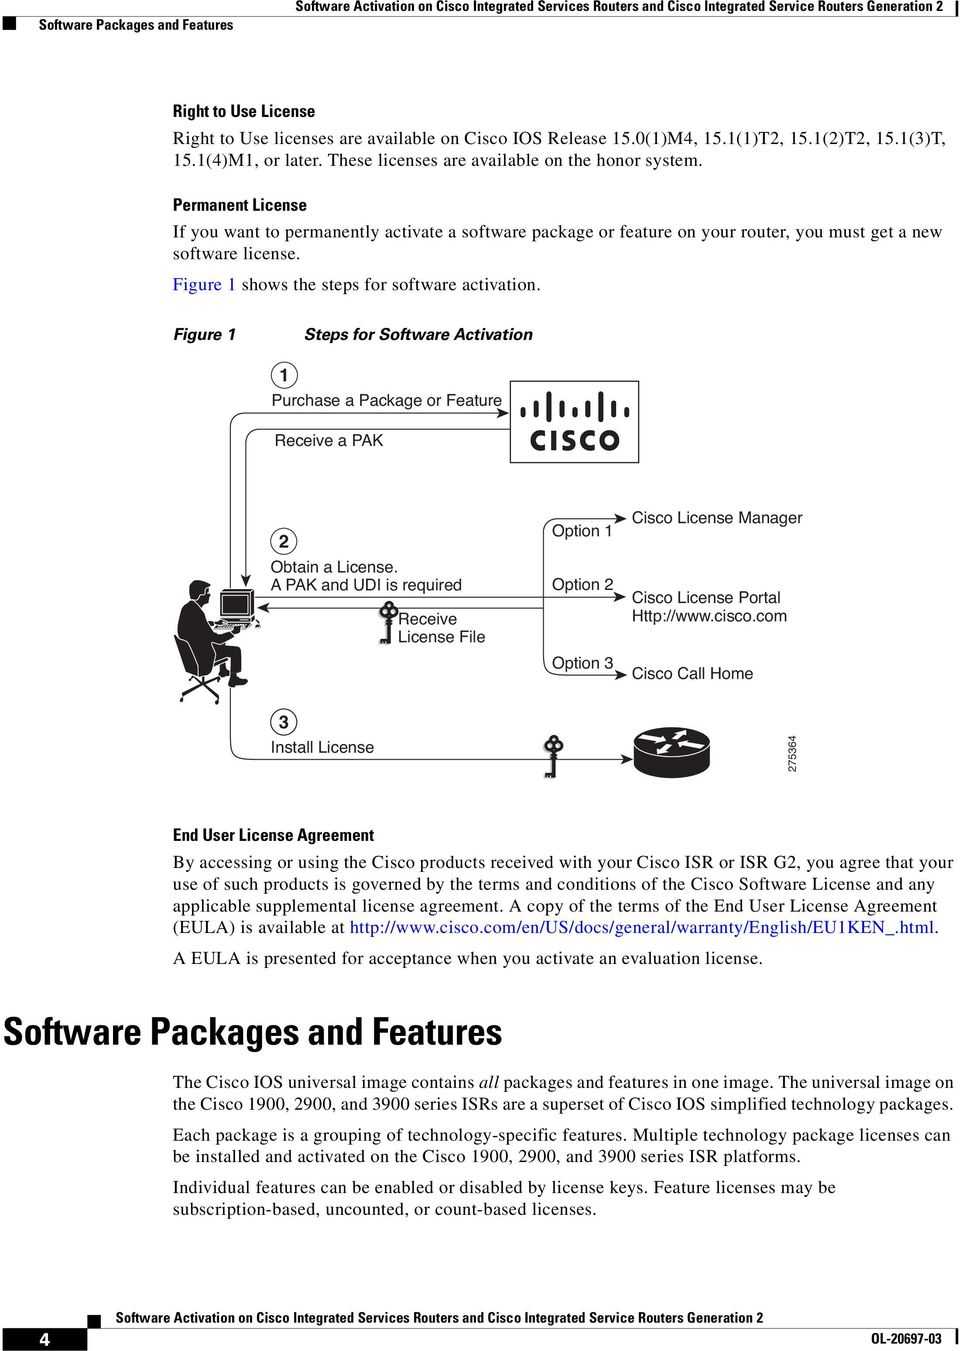 Software Activation on Cisco Integrated Services Routers and